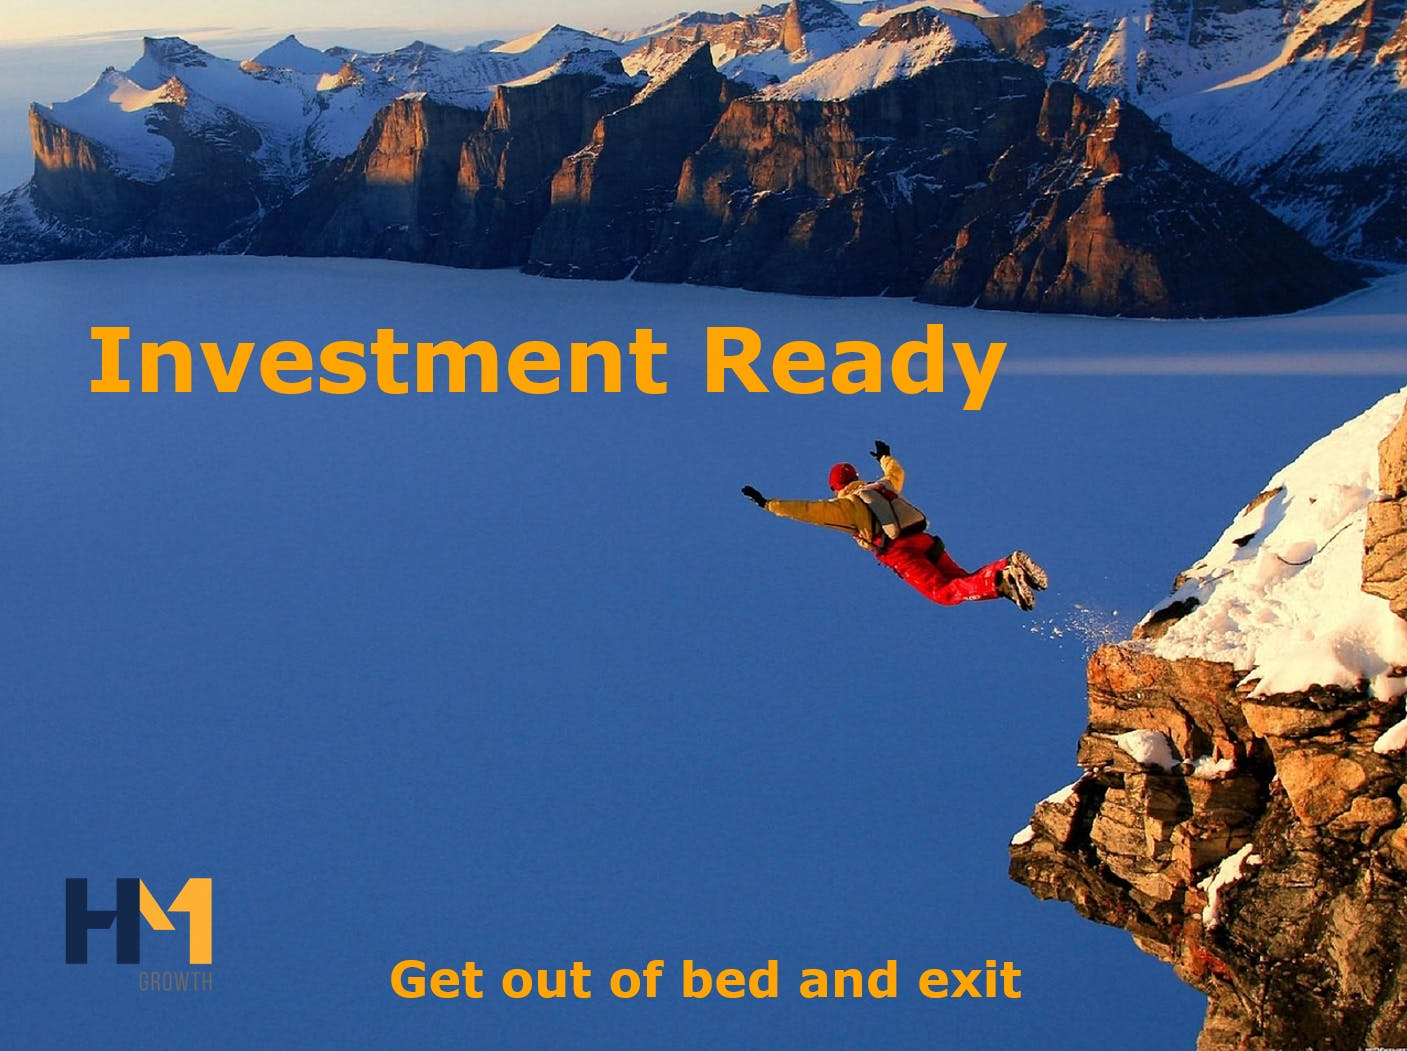 Investment ready: get out of bed and exit